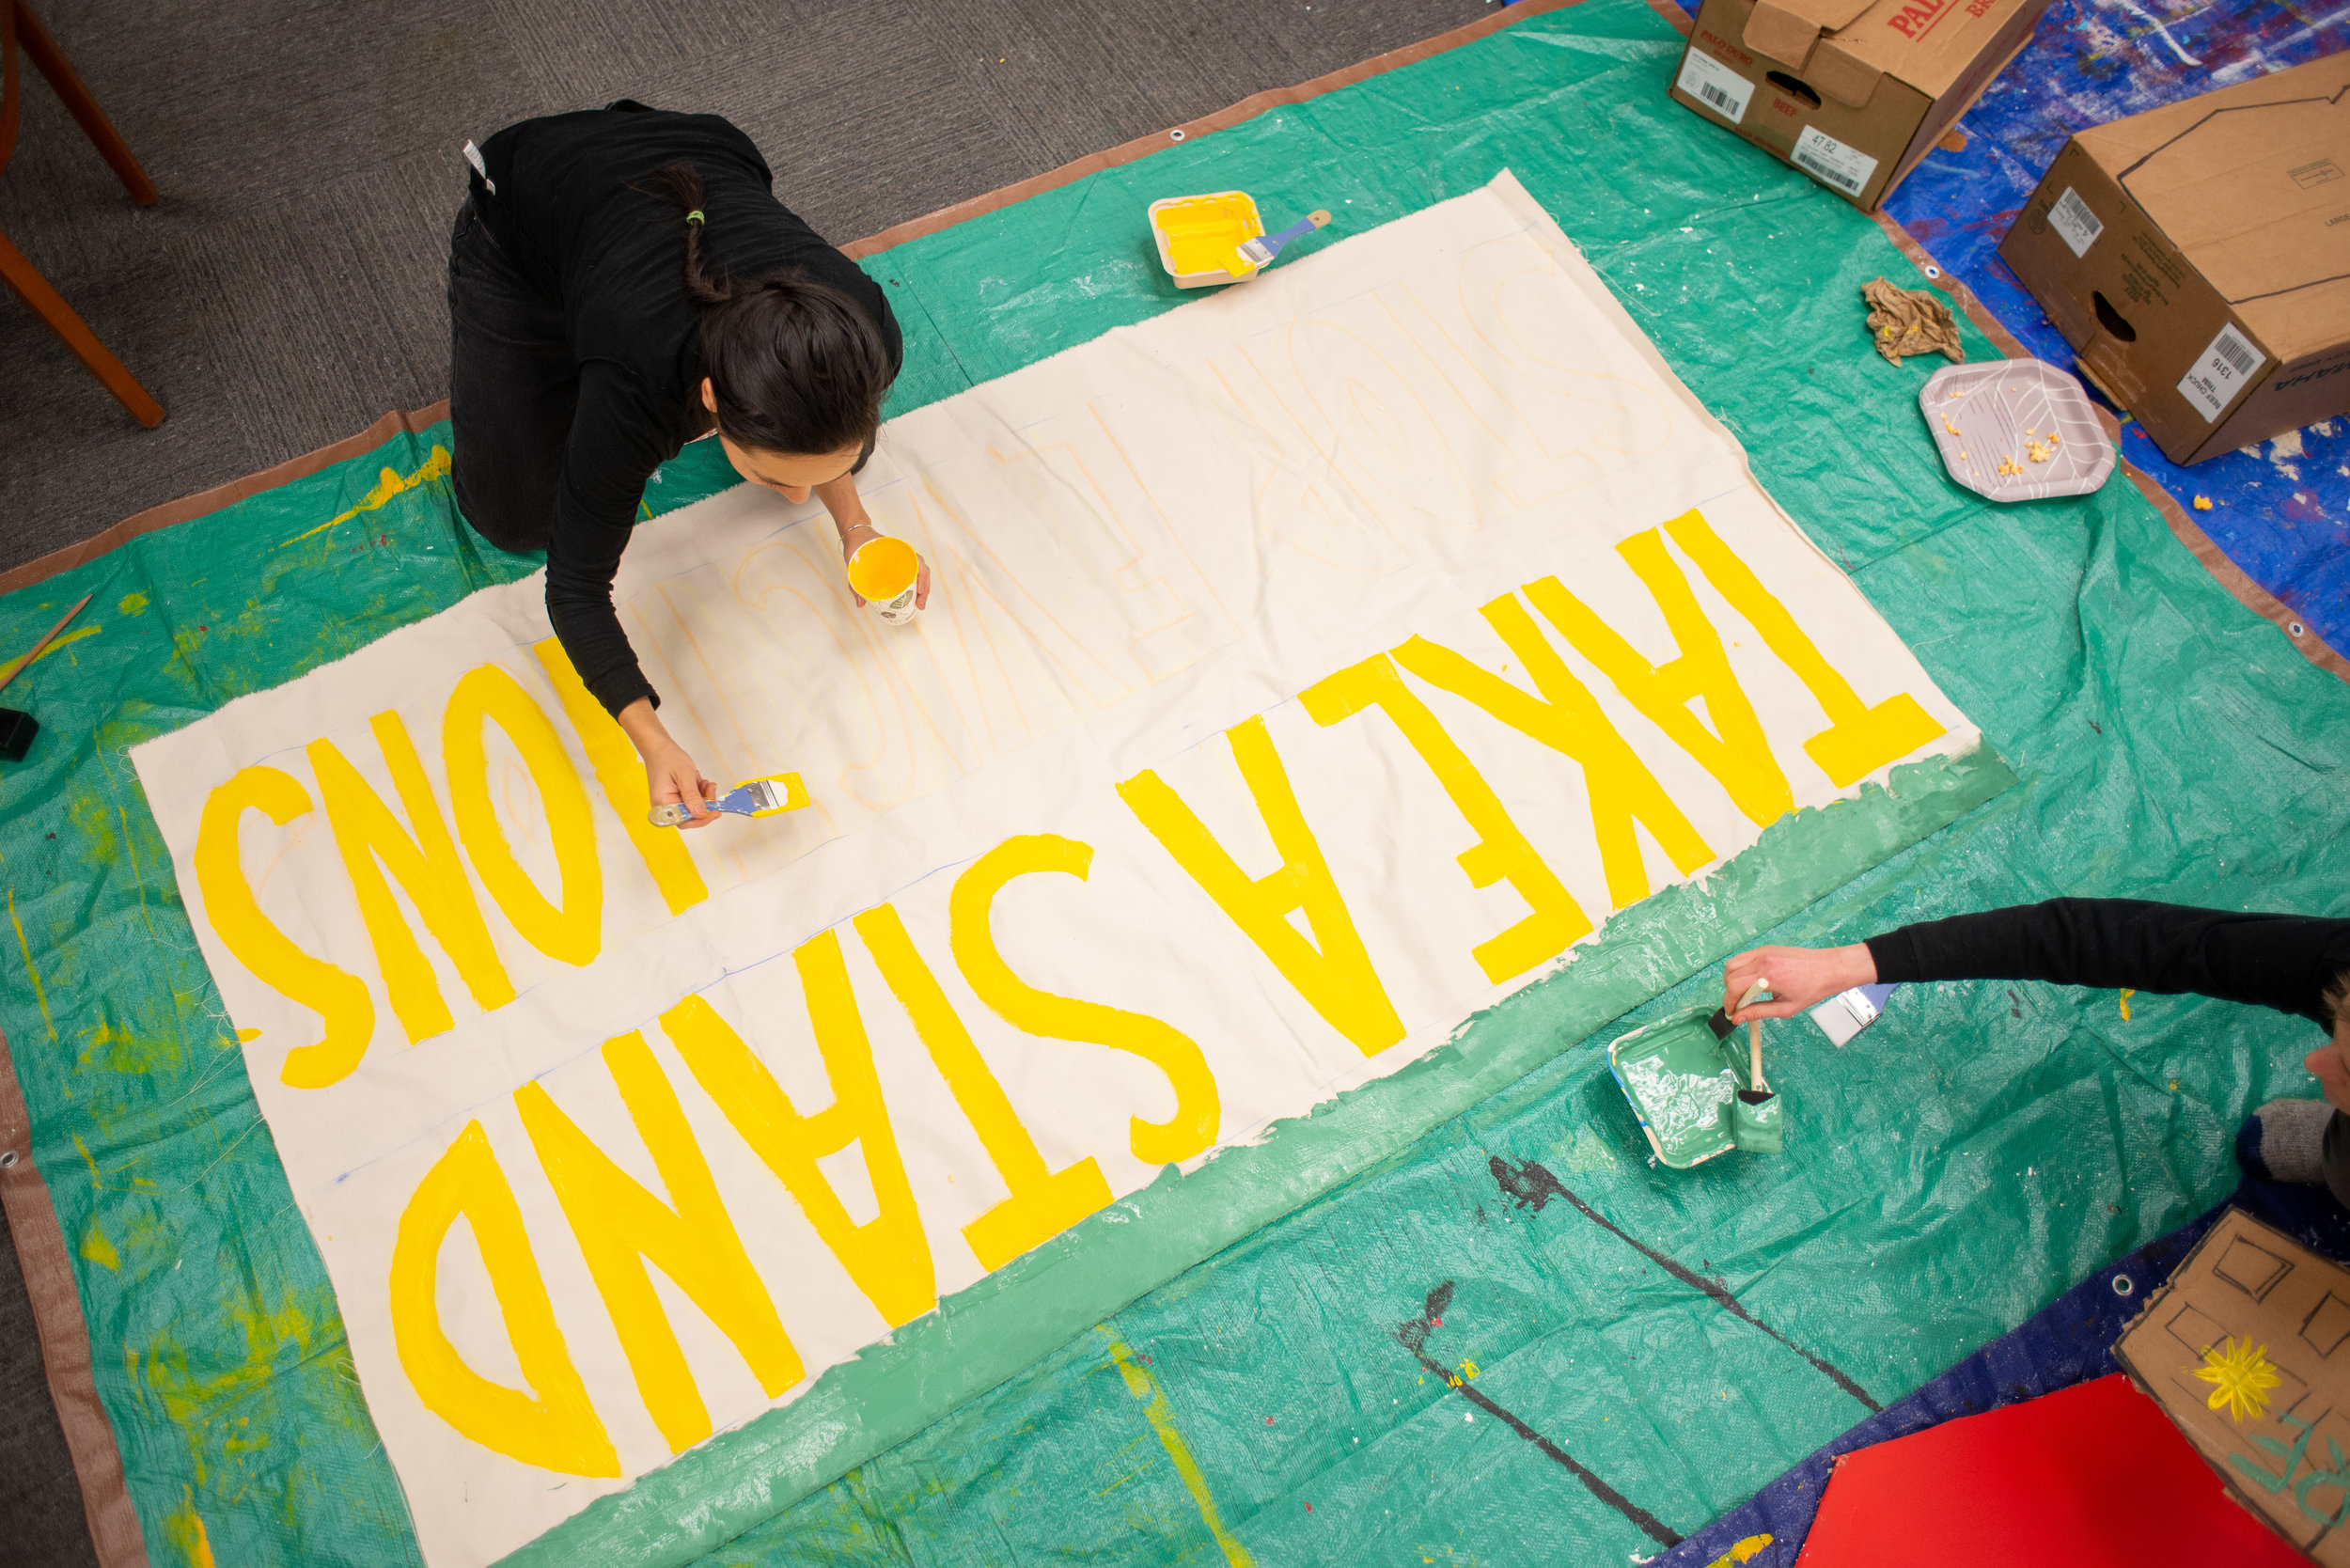 Volunteers work on painting a banner in support of residents in South Minneapolis on February 27, 2019. The renters are trying to buy their buildings from their former landlord after he was stripped of his rental licenses by the city of Minneapolis.